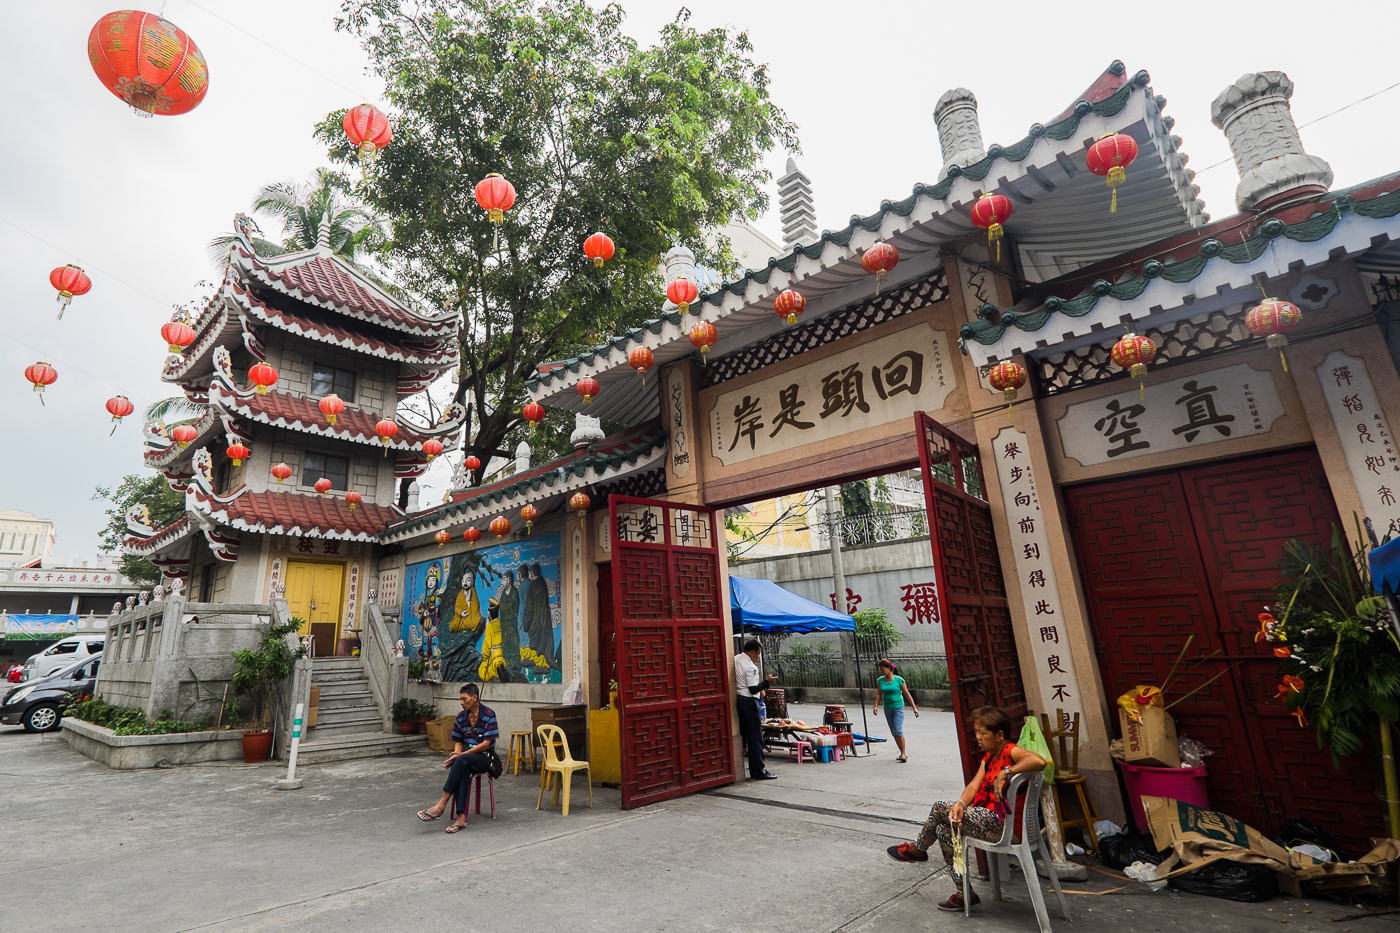 The Thousand Buddha Temple offers a peek into Buddhism and Chinese culture. During Chinese New Year's Eve, many people gather in prayer at the different temples.